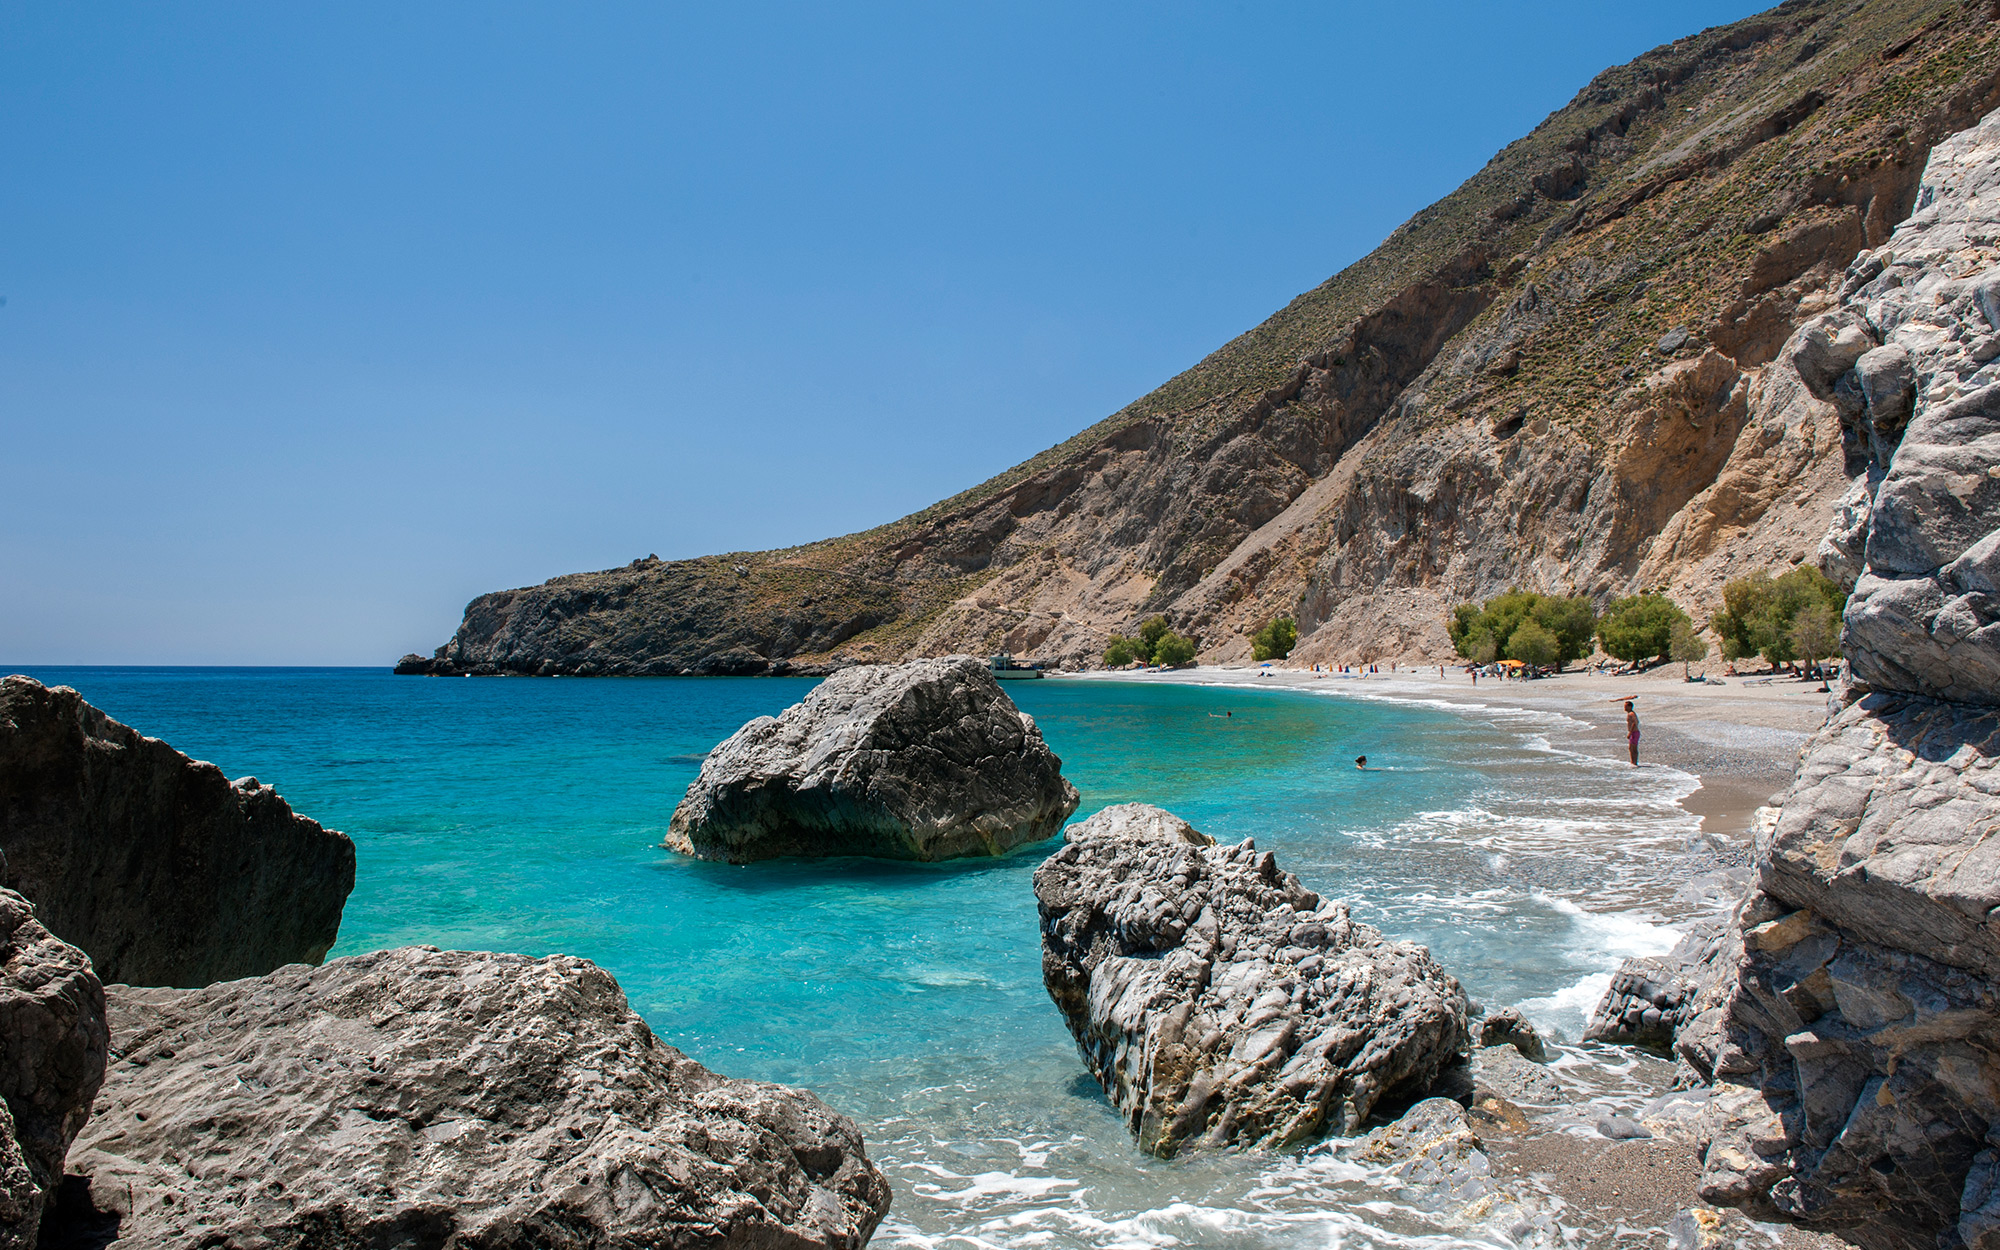 HORA SFAKION, CRETE, GREECE - 2014/05/21: View of secluded Sweetwater Beach between the villages of Hora Sfakion and Loutro on the southern coast of the Greek island of Crete. (Photo by Leisa Tyler/LightRocket via Getty Images)